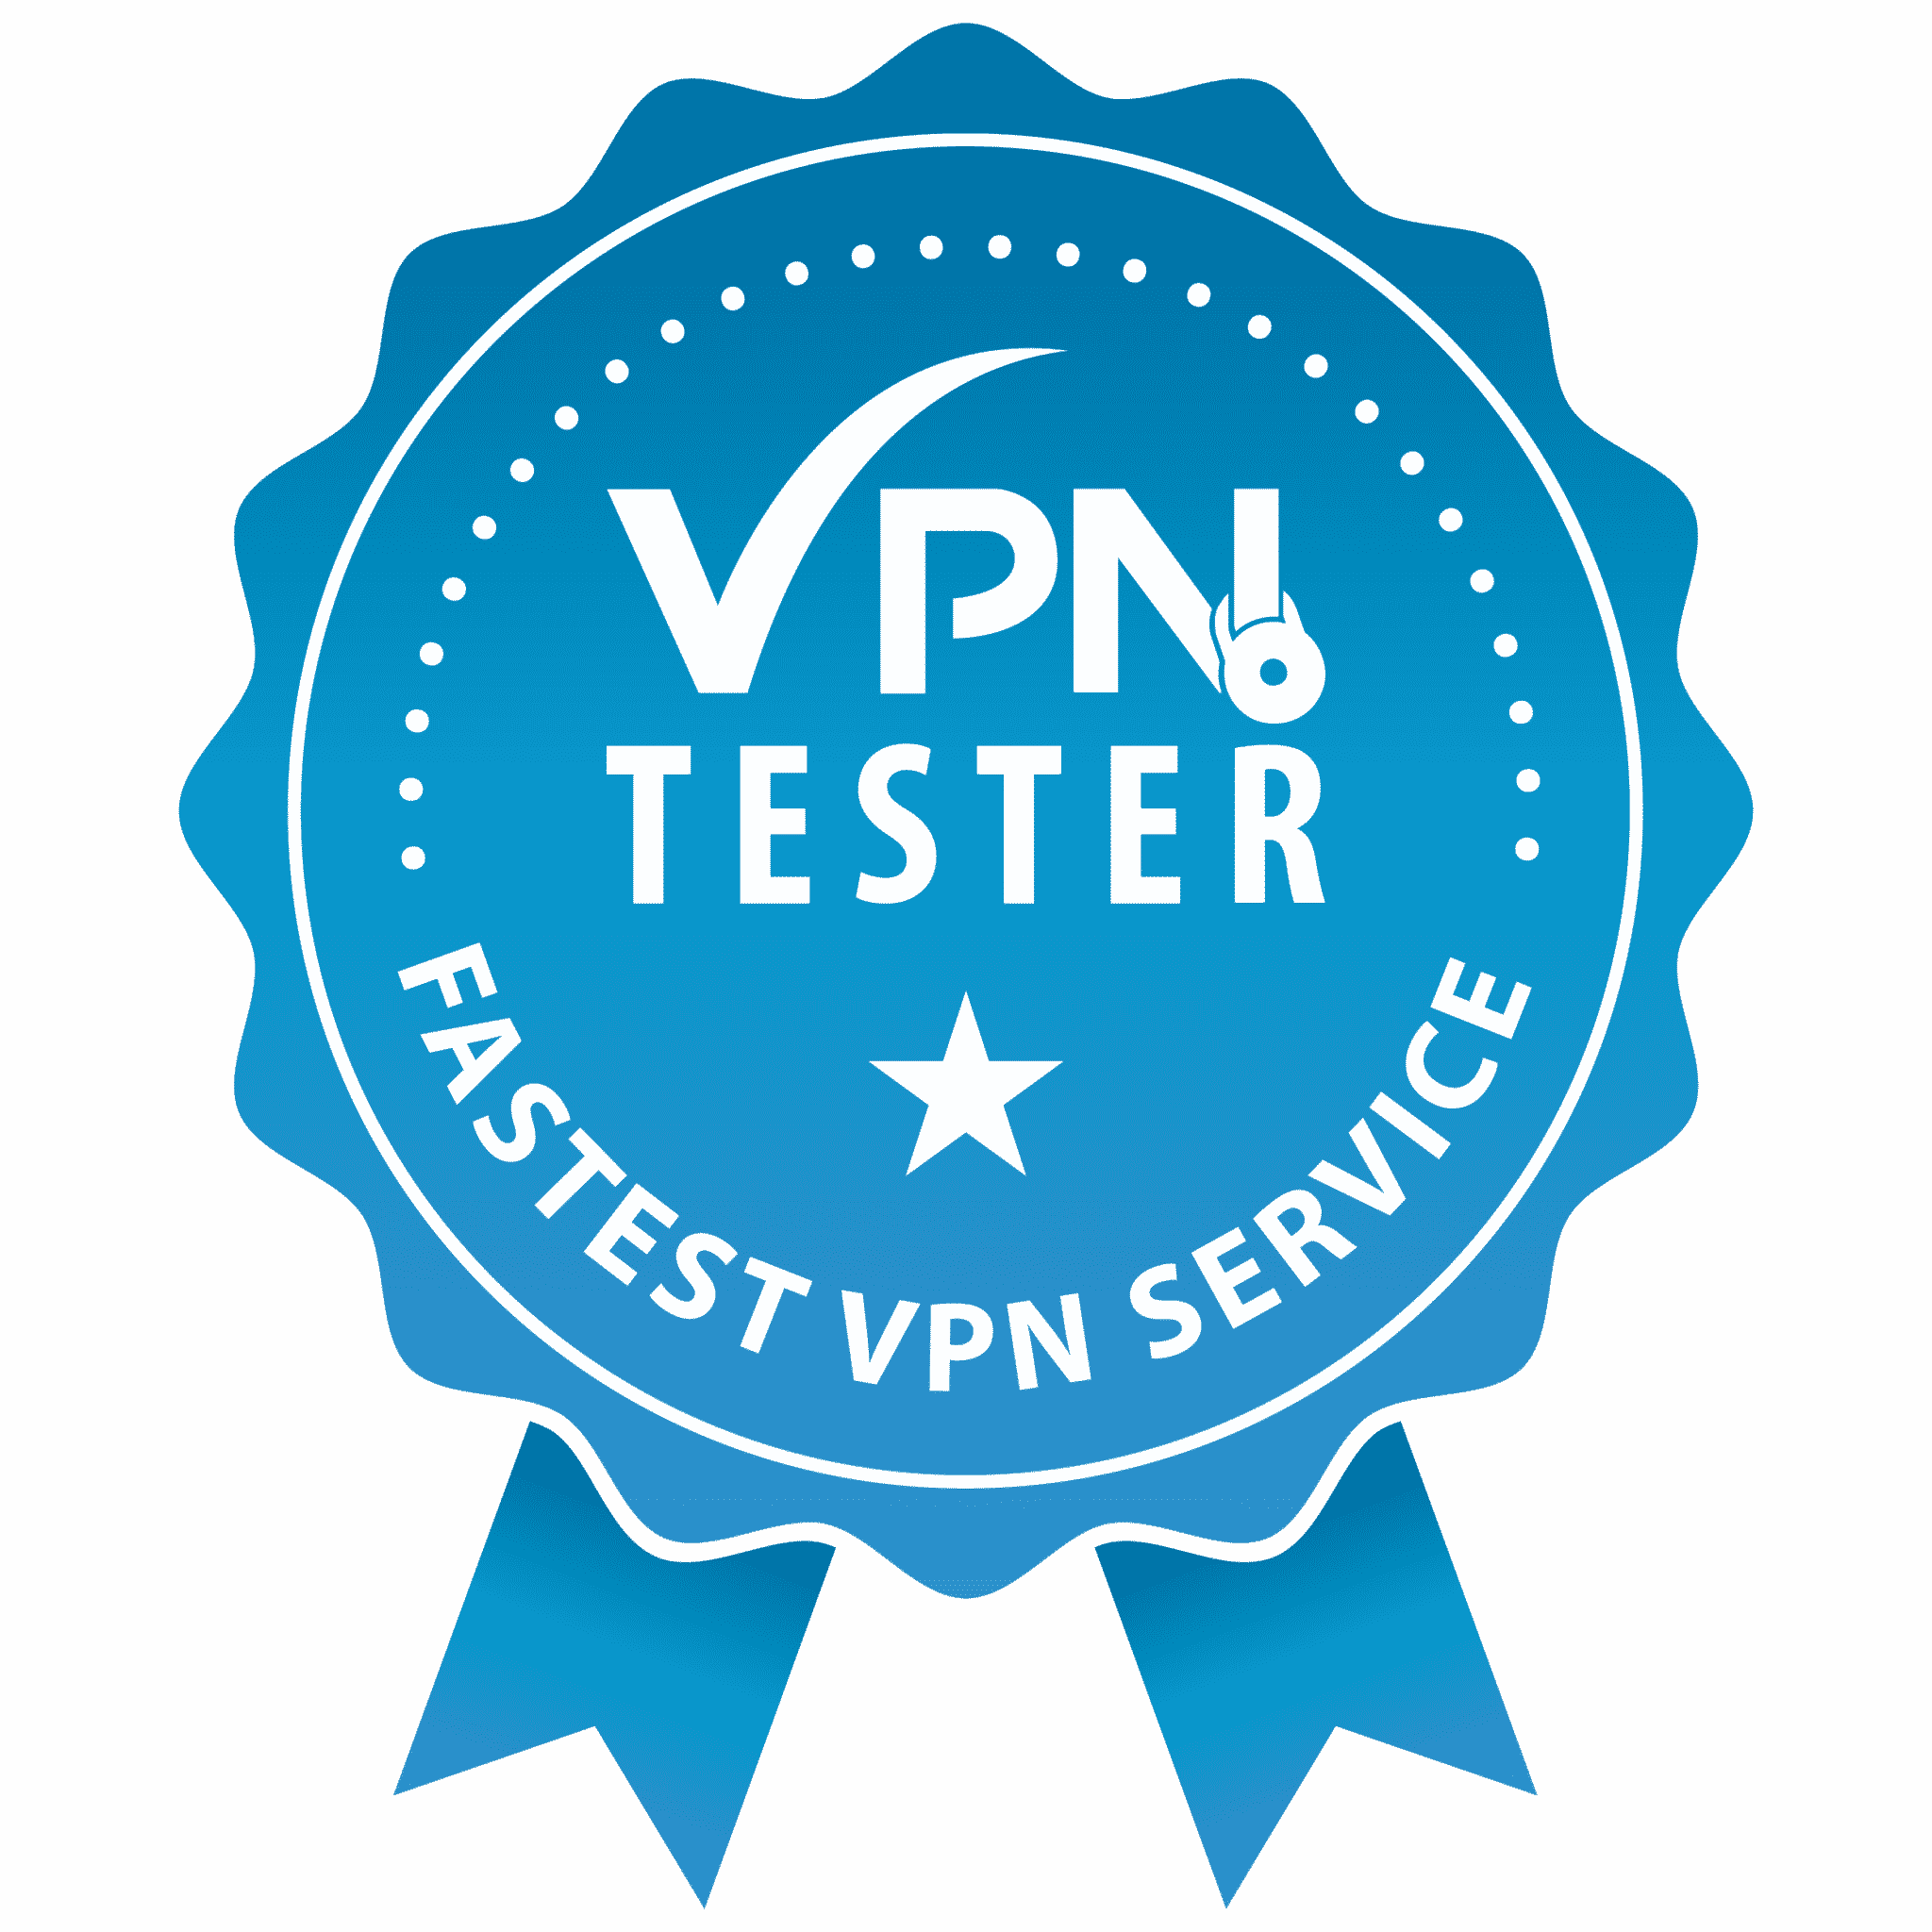 The Fastest VPN Service